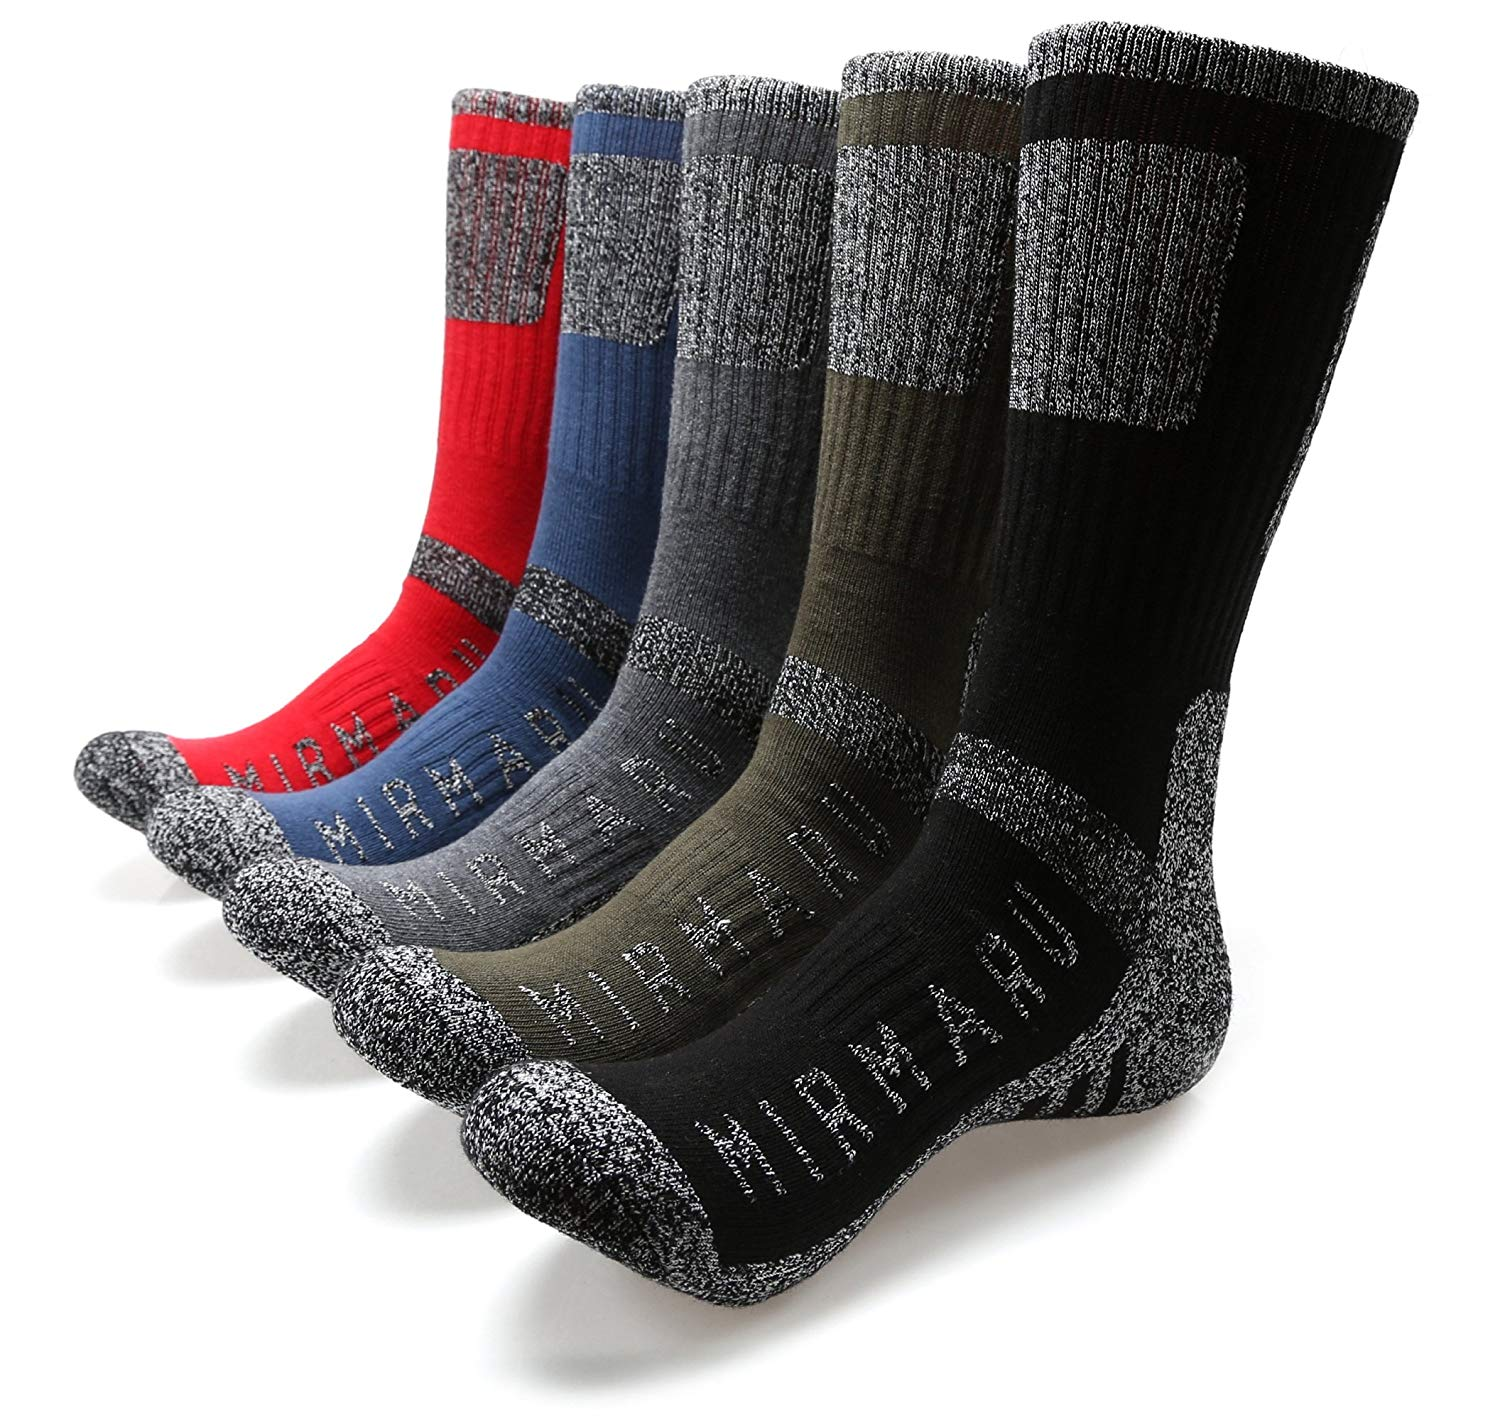 MIRMARU Men's 5 Pairs Multi-Performance Outdoor Sports Hiking Trekking Crew Socks best hunting socks for cold weather